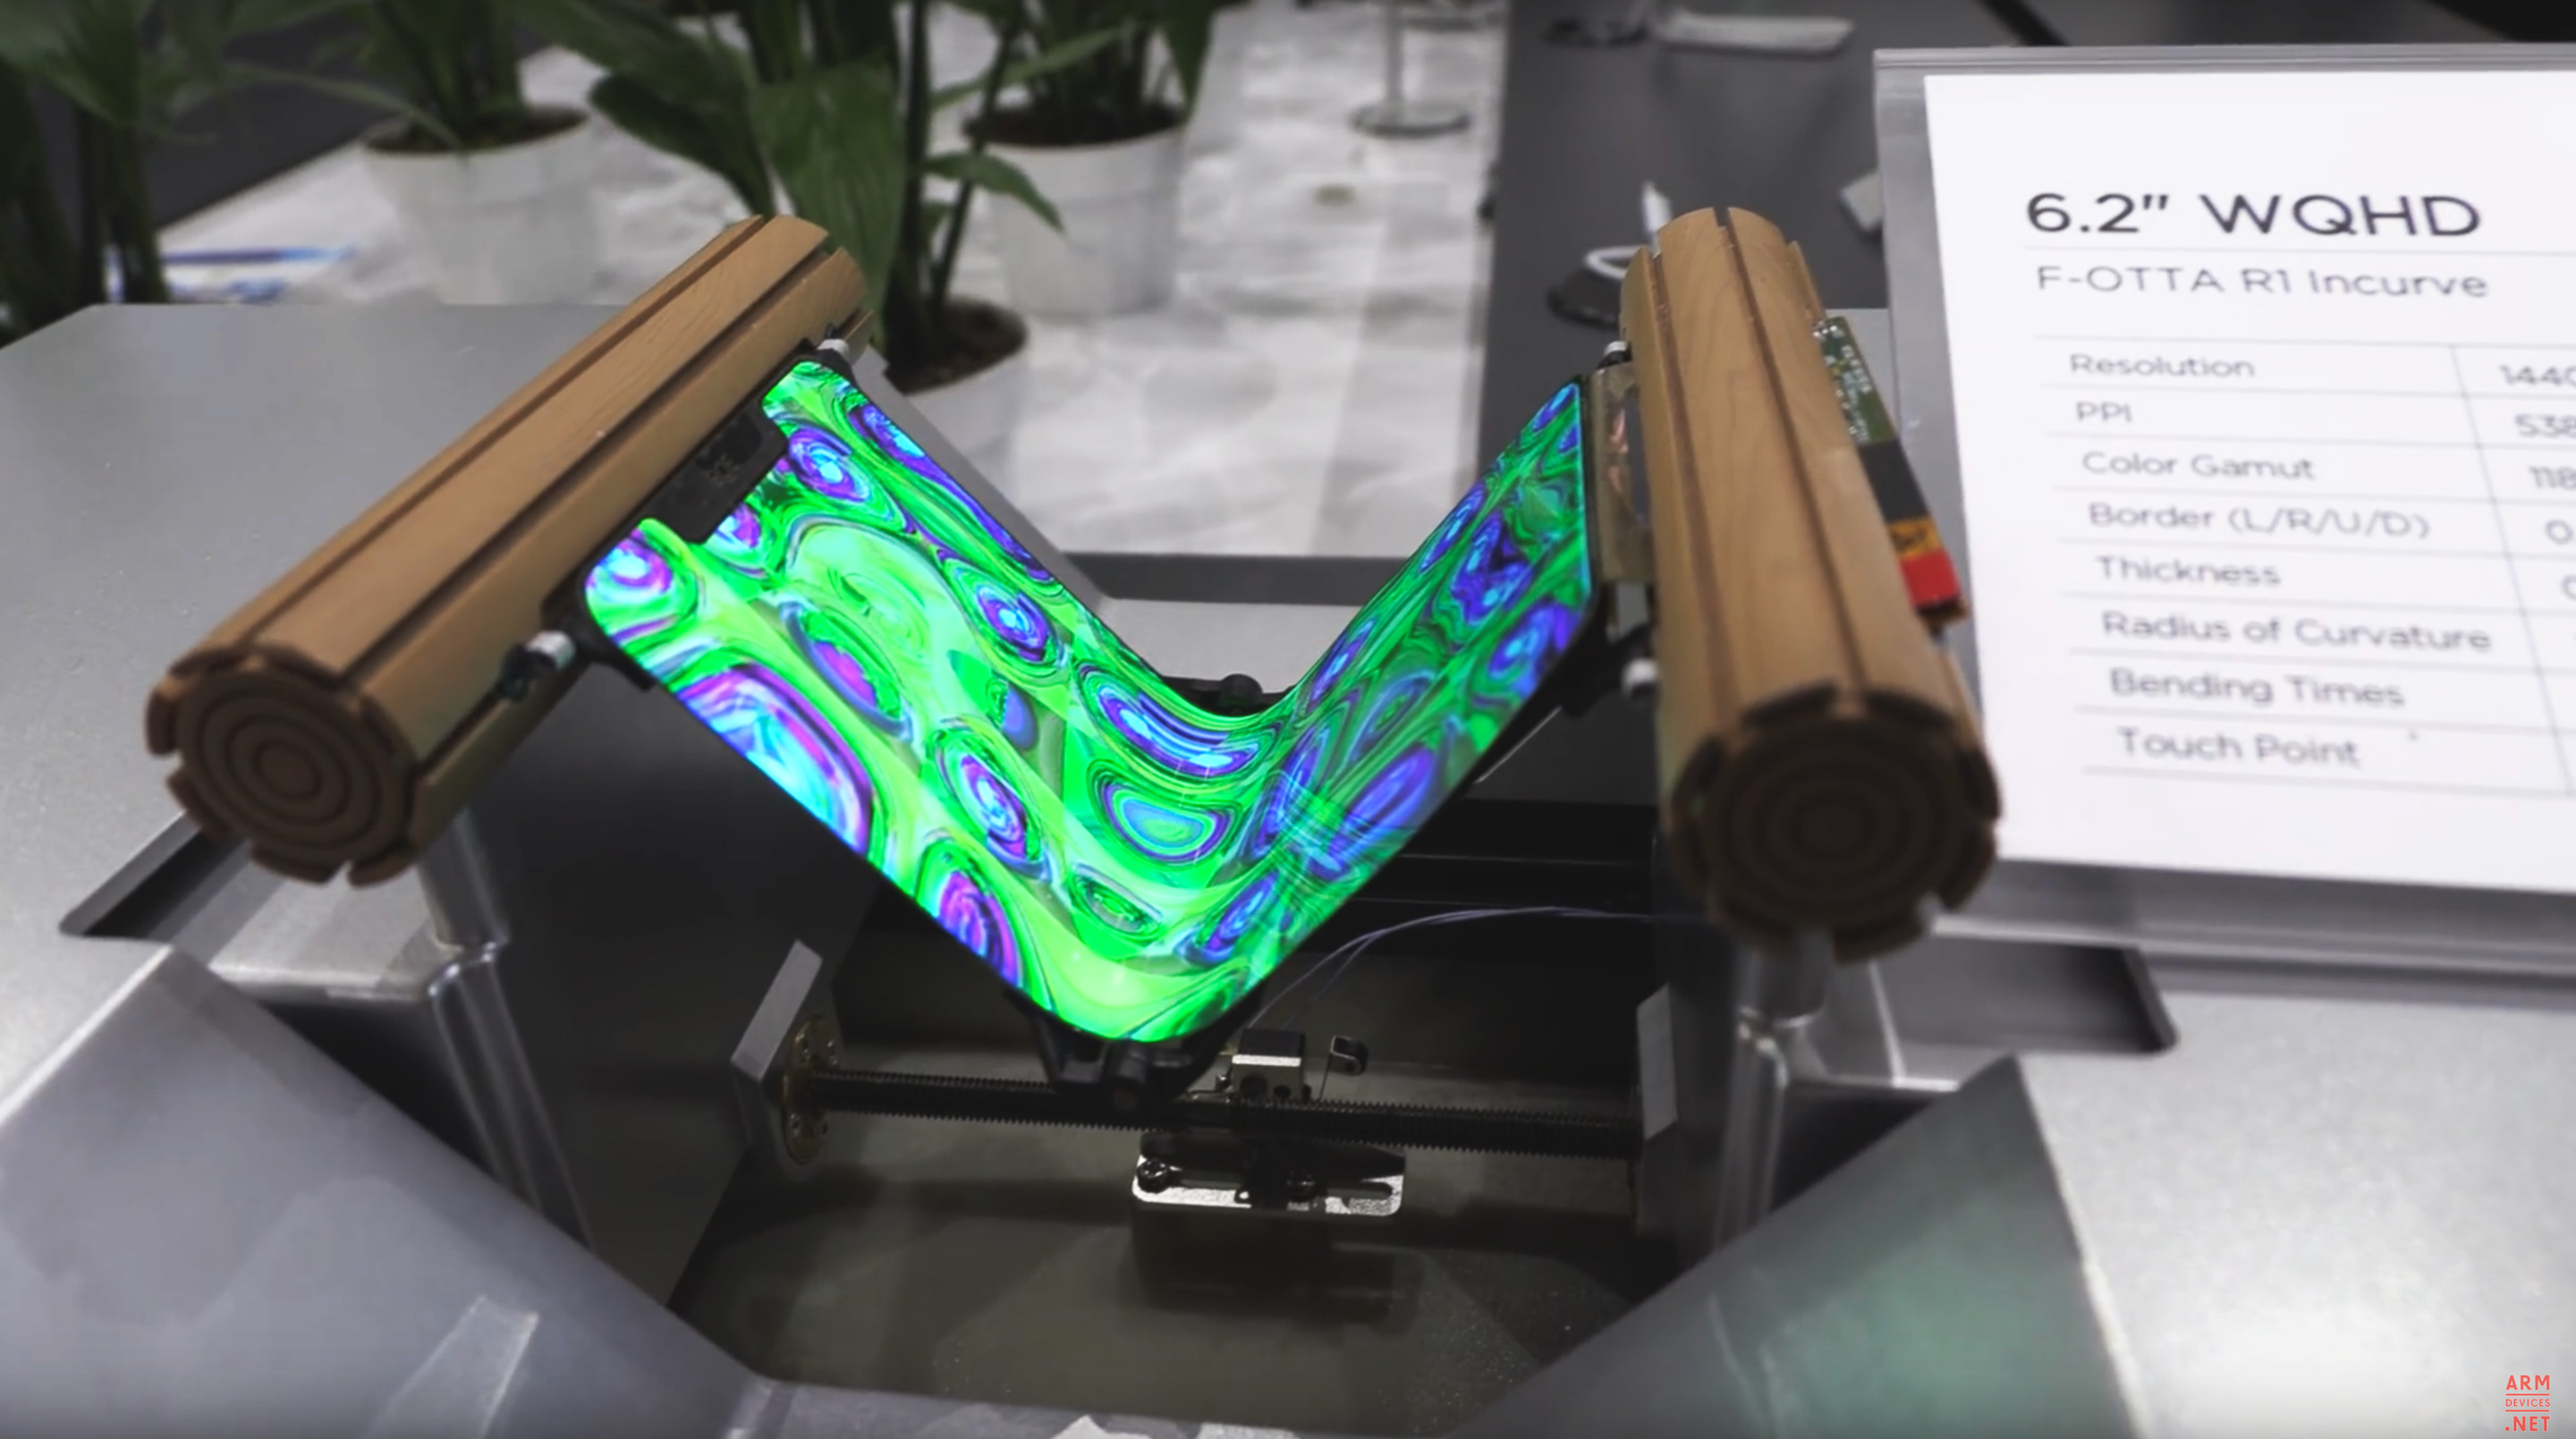 1a1baa5dc8d The future of camera screens - Holographic or Foldable OLED  - EOSHD